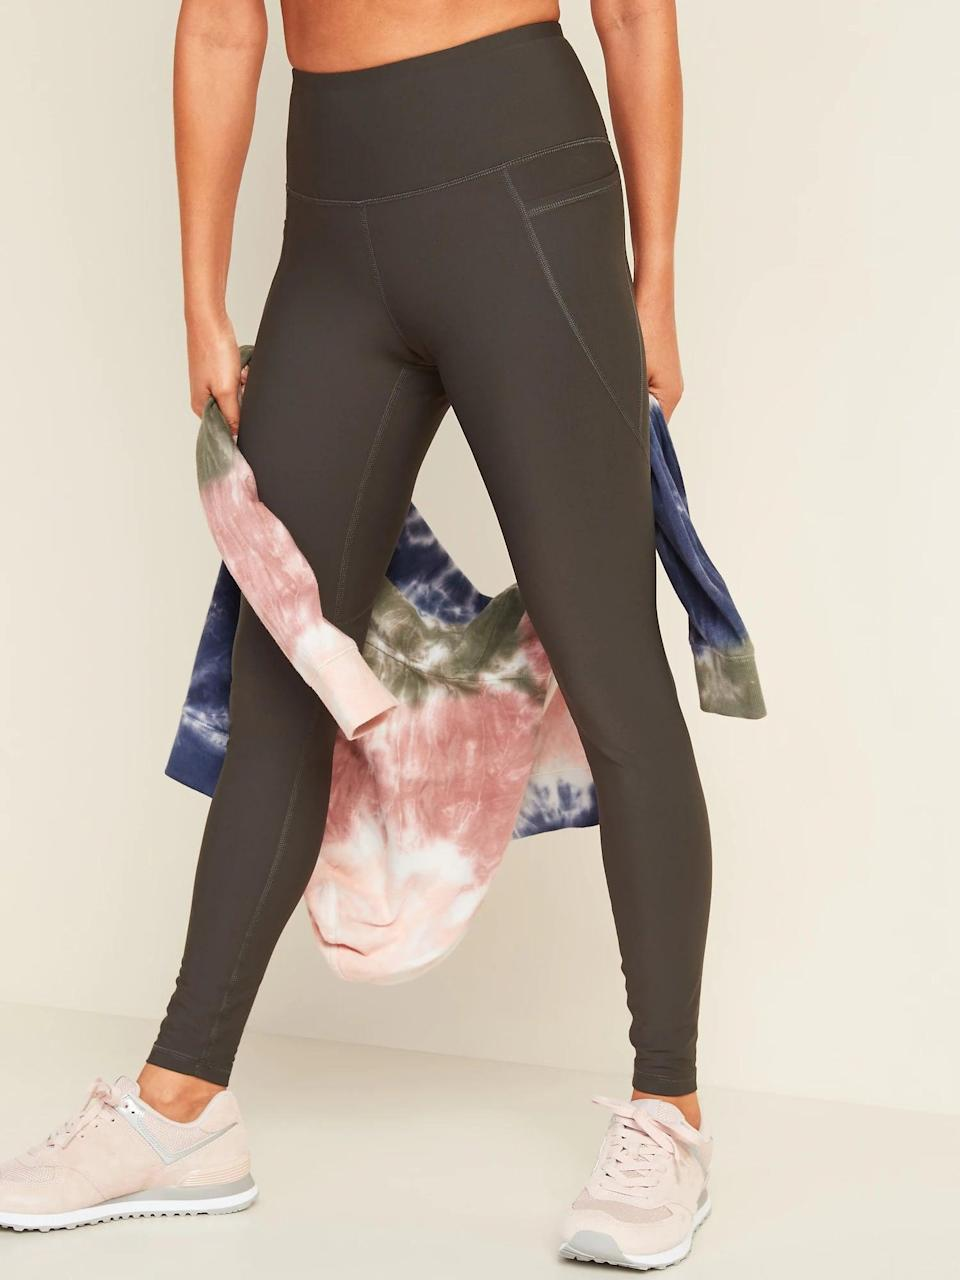 """<p>""""The best feature of the <span>High-Waisted Powersoft Side-Pocket Leggings</span> ($30, originally $40) is the waistband. It's nice and high, which makes me feel super secure when doing any sort of HIIT workout where jumping is involved, and it's thick, which means no nasty fabric marks on my skin."""" - RB</p> <p>Read the full <a href=""""https://www.popsugar.com/fitness/old-navy-high-waisted-workout-leggings-review-47958729"""" class=""""link rapid-noclick-resp"""" rel=""""nofollow noopener"""" target=""""_blank"""" data-ylk=""""slk:Old Navy High-Waisted Powersoft Side-Pocket Leggings review"""">Old Navy High-Waisted Powersoft Side-Pocket Leggings review</a>.</p>"""